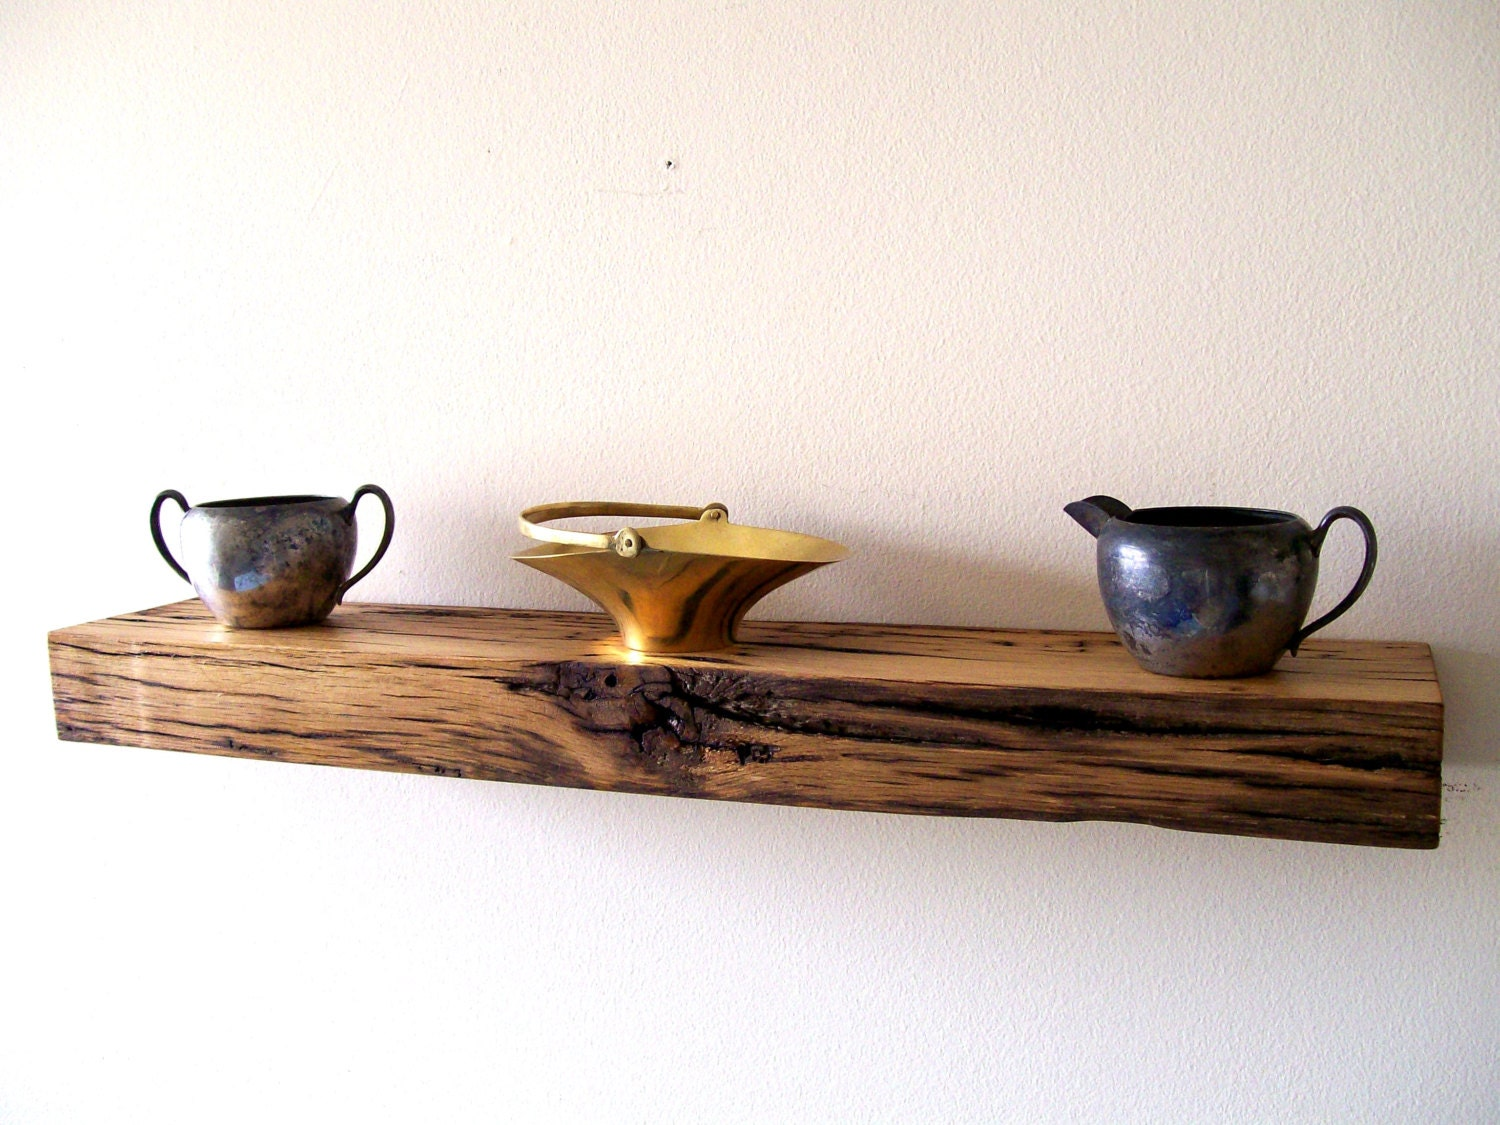 ... Reclaimed Barn Wood SOLID OAK Floating Shelf Wall Shelf Wall Hanging  Rustic. 🔎zoom - Reclaimed Barn Wood SOLID OAK Floating Shelf Wall Shelf Wall